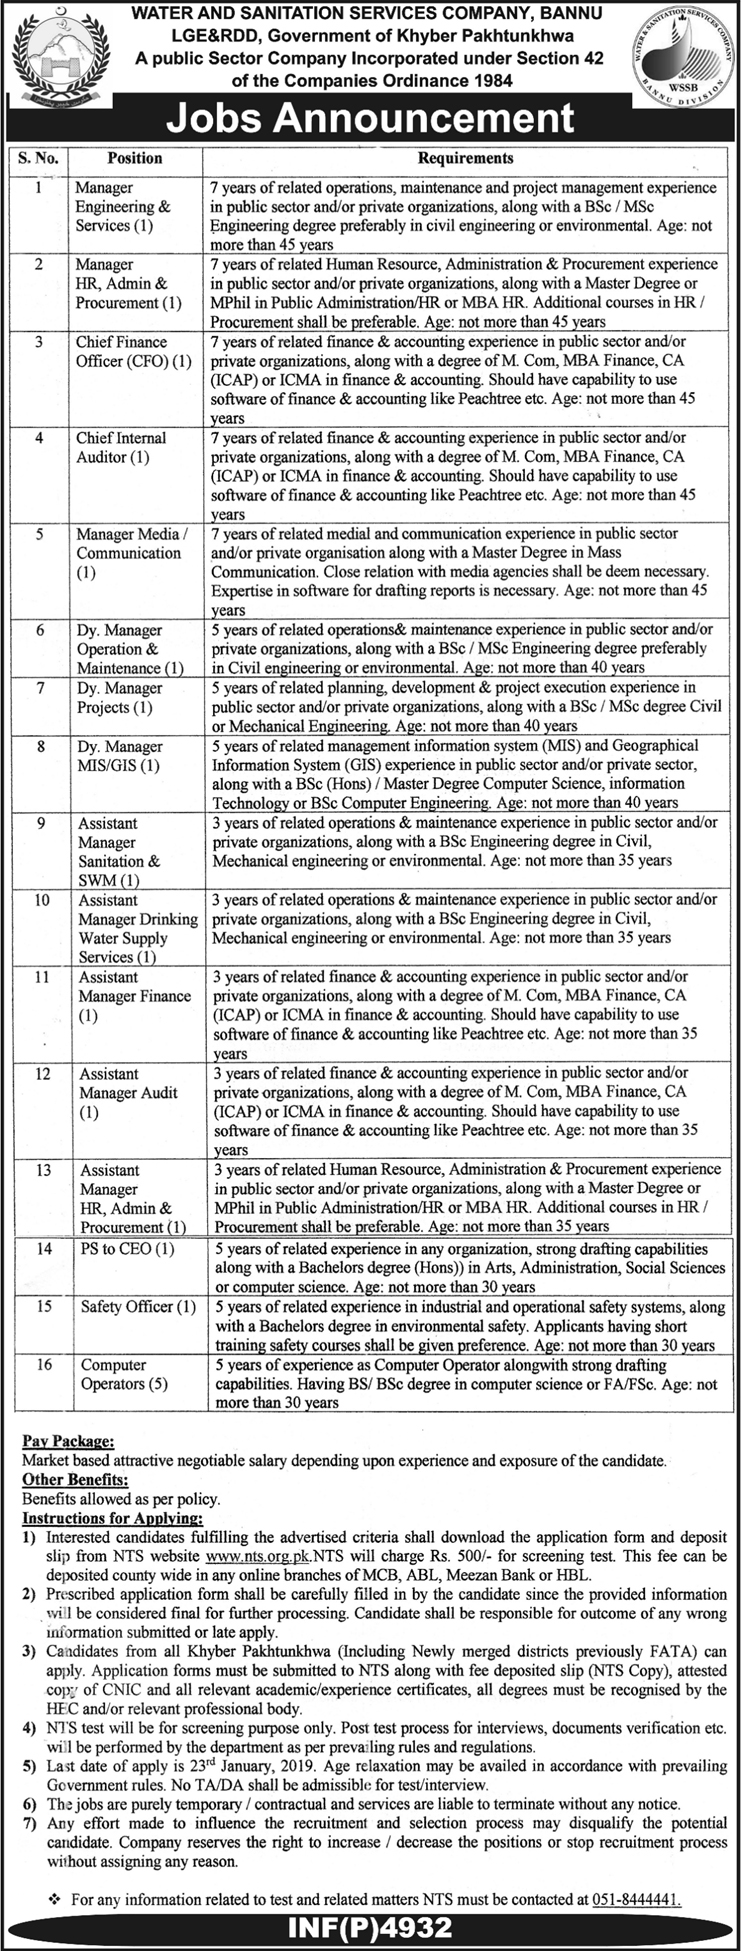 NTS Latest Jobs In Water And Sanitation Services Company Bannu 08 Jan 2019